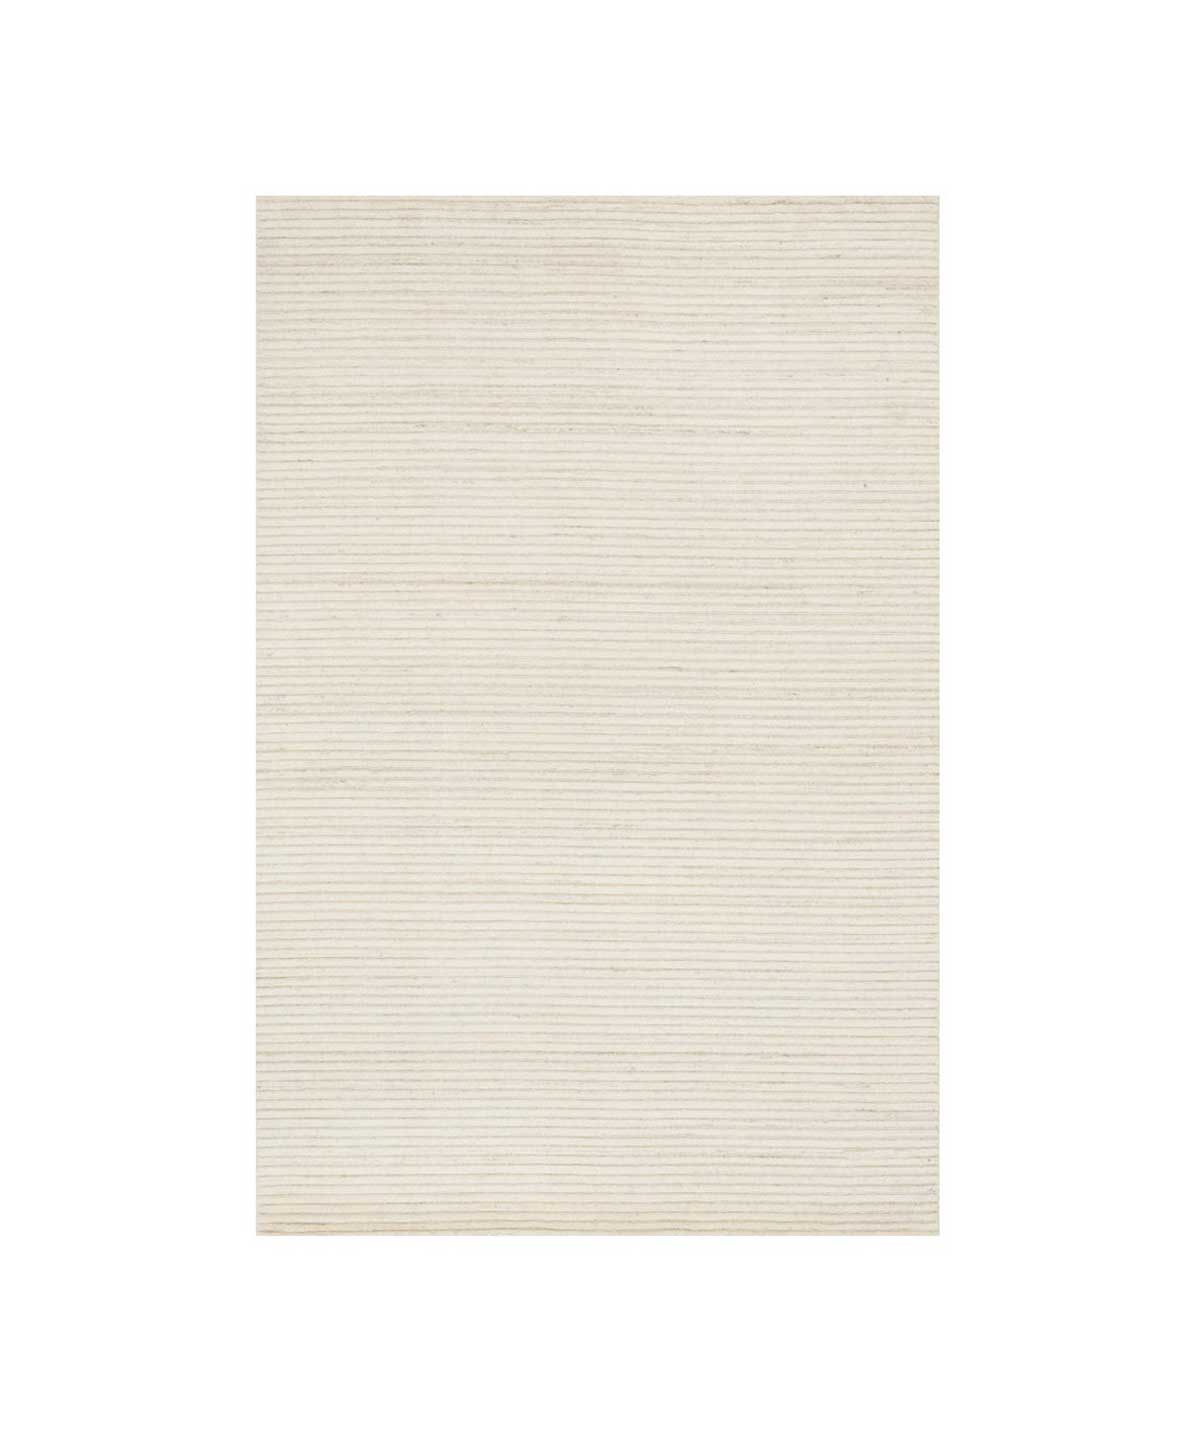 Hadley Rug in Ivory